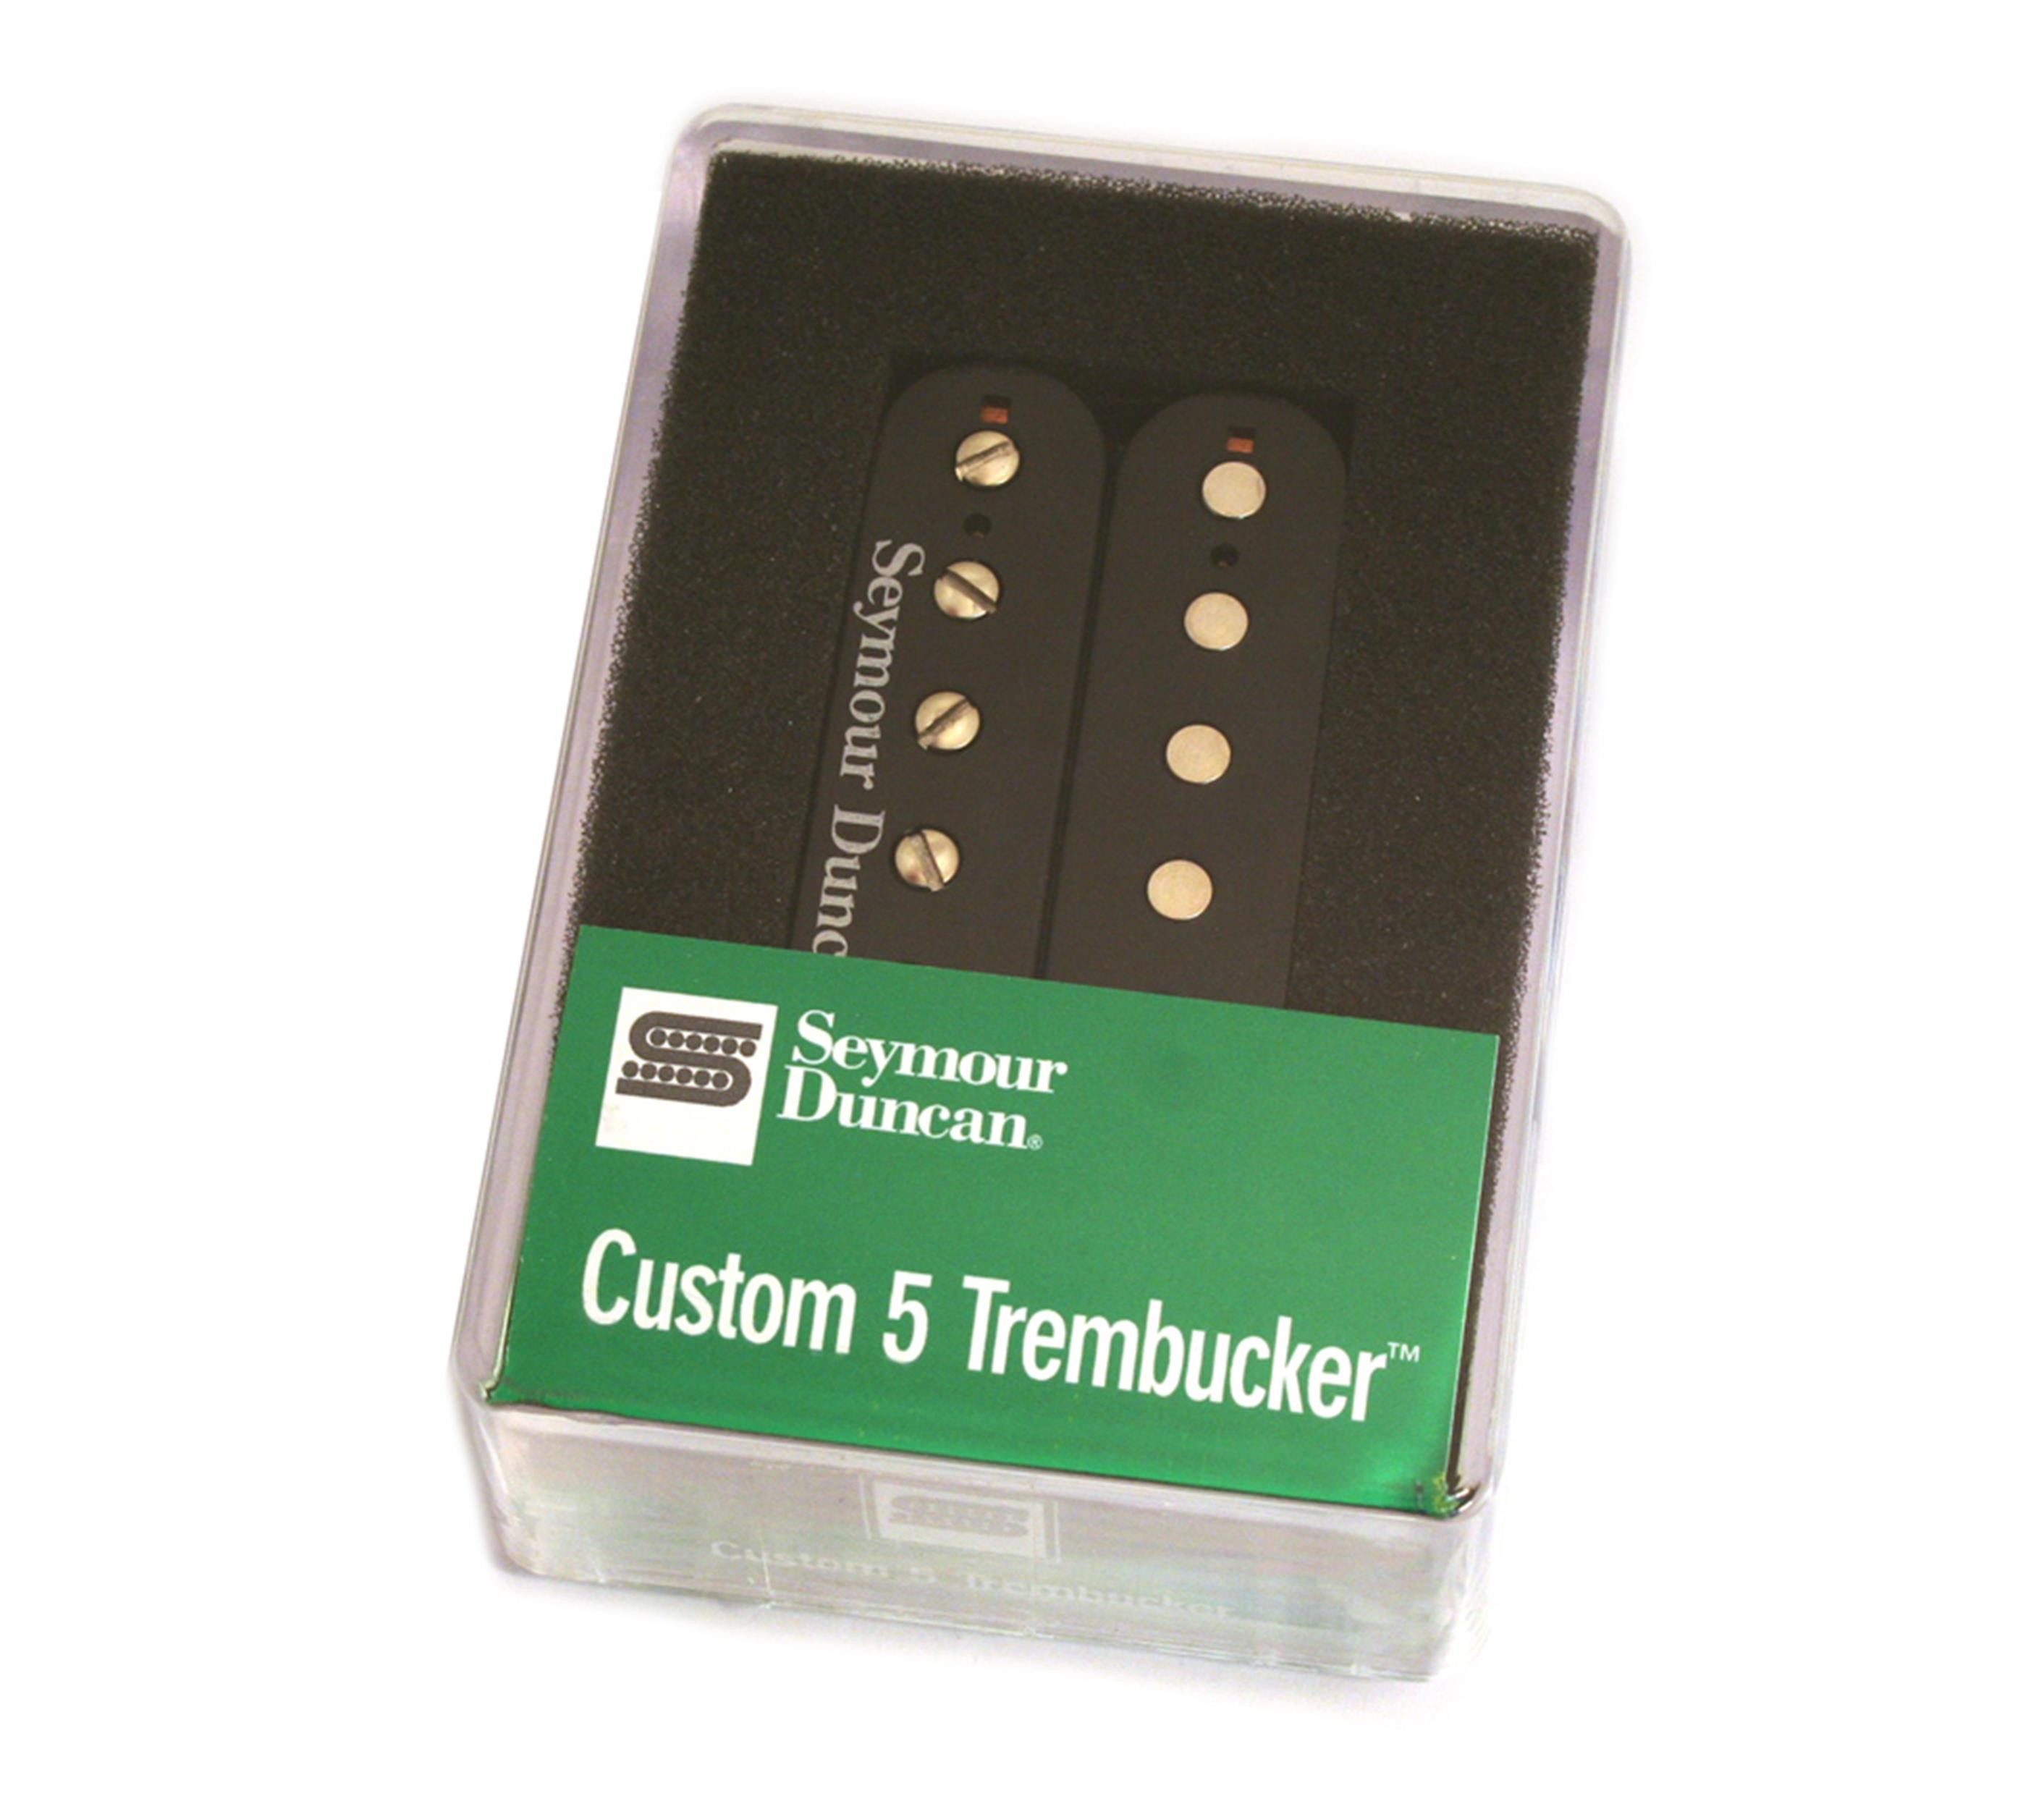 SEYMOUR-DUNCAN TB 14 CUSTOM 5 TREMBUCKER BRIDGE